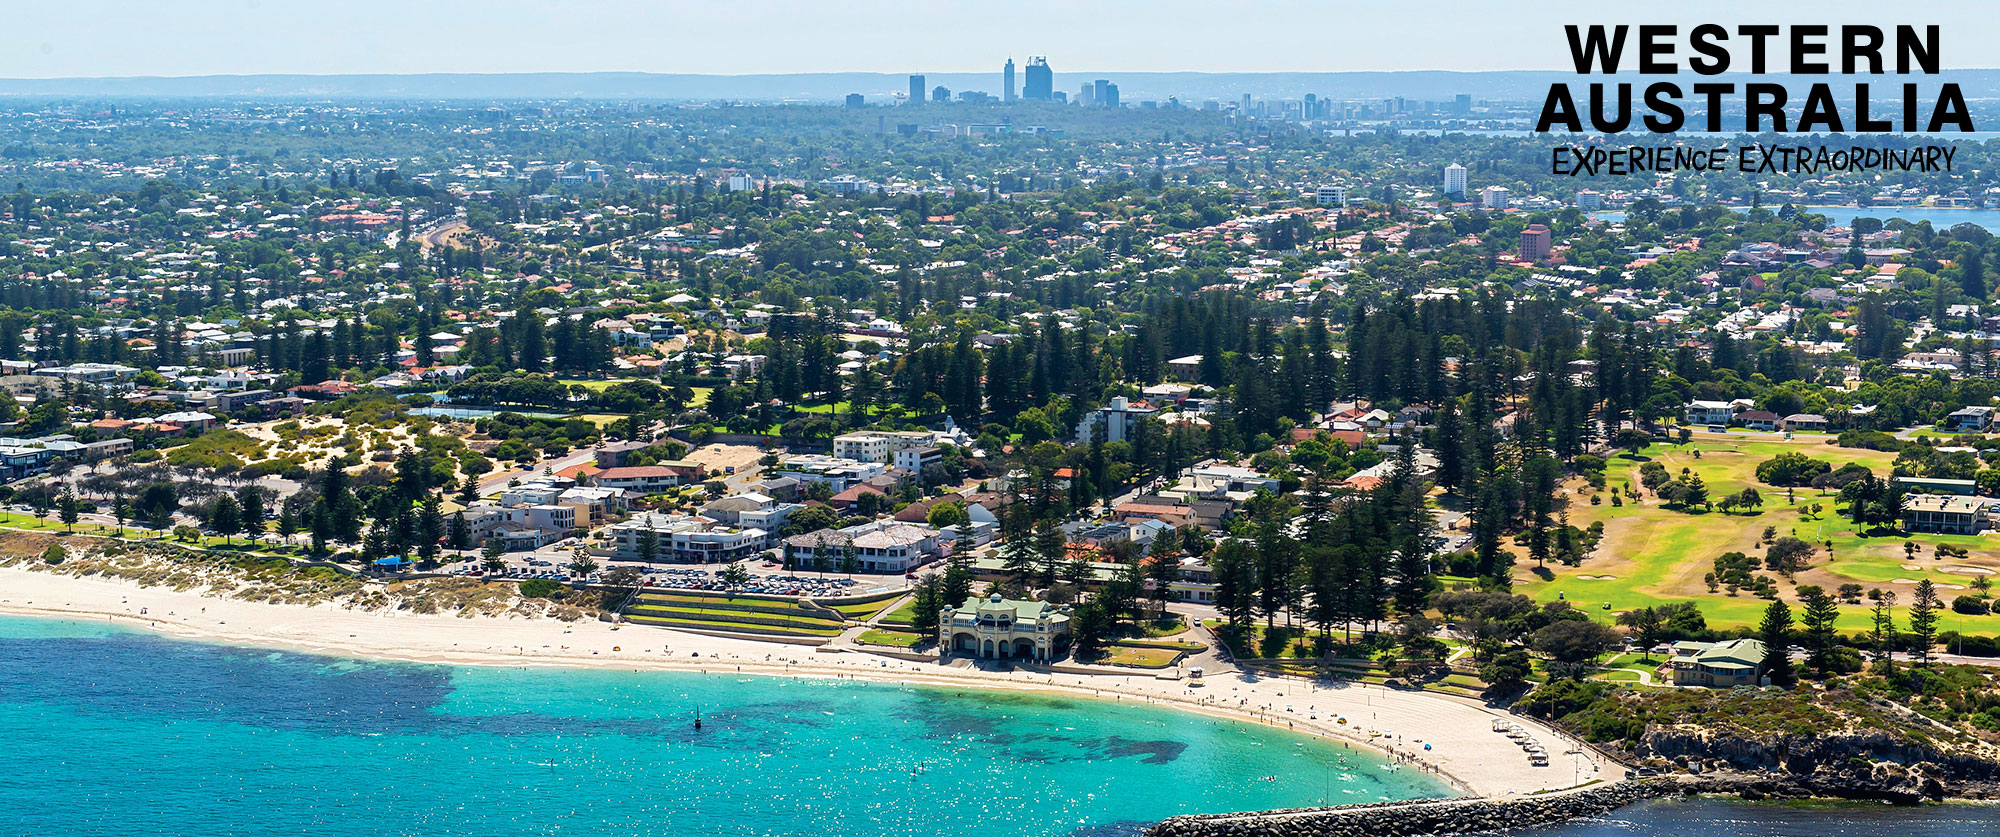 Best of Western Australia Vacation Package